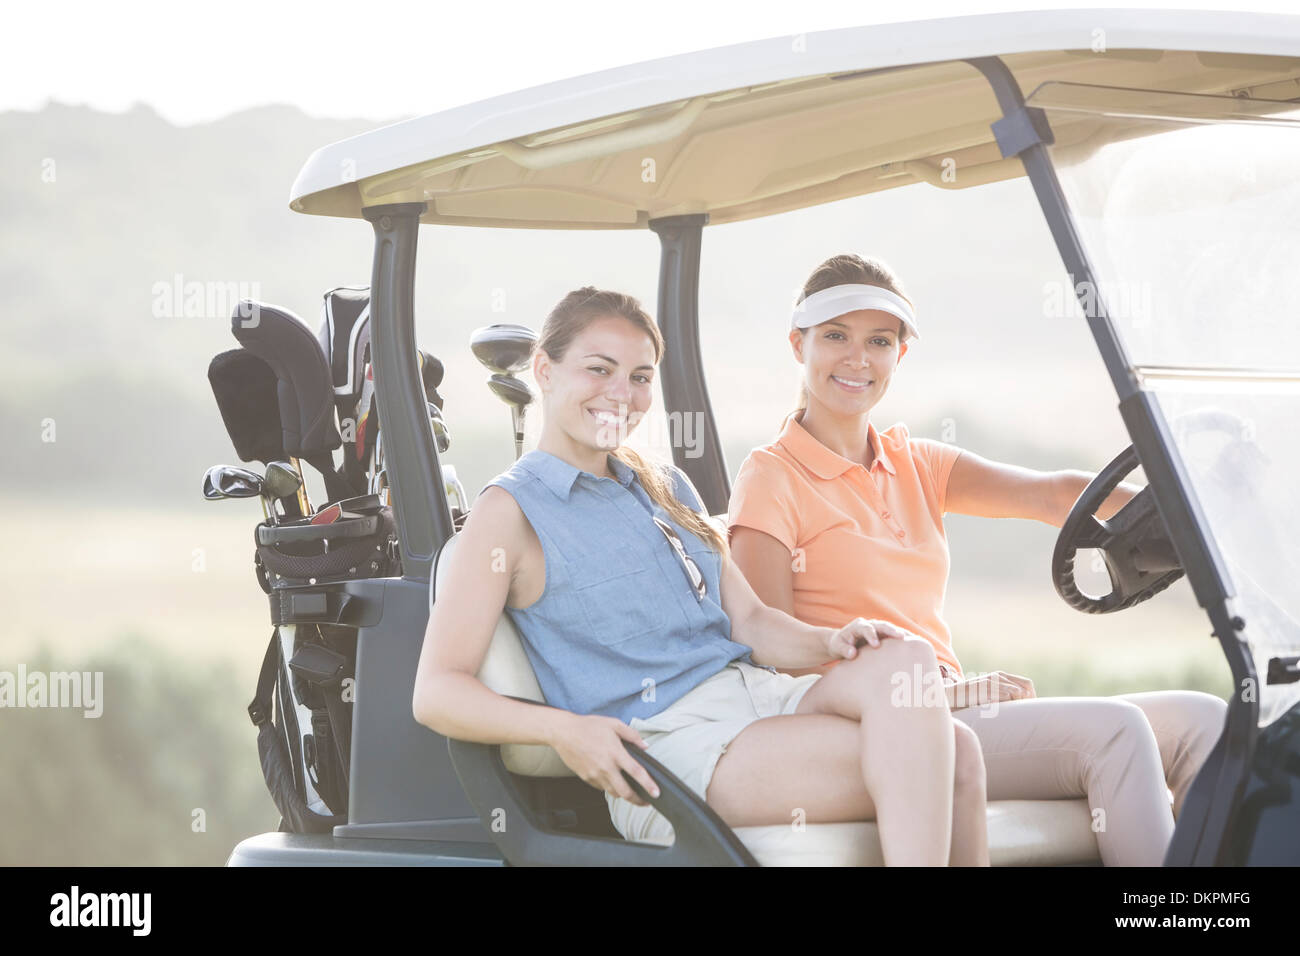 Women driving golf cart on course - Stock Image